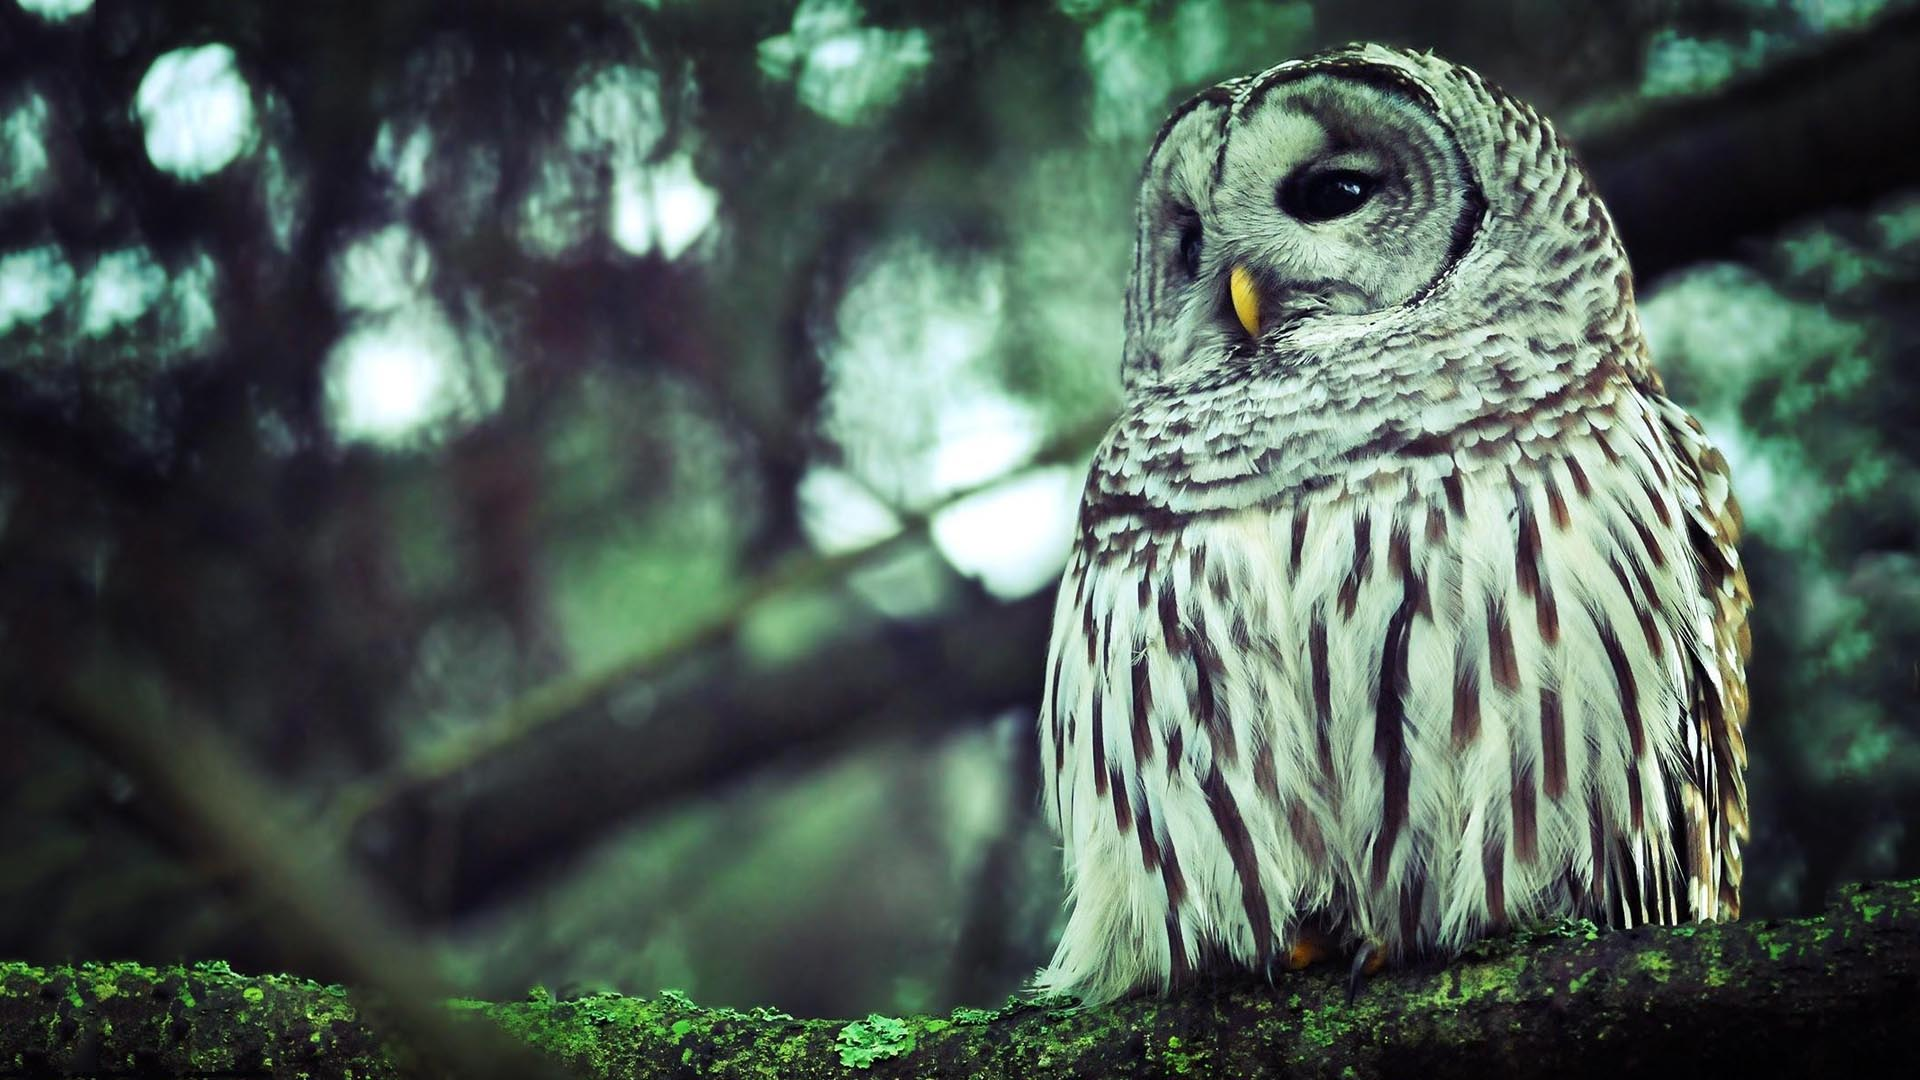 Owl desktop wallpaper hd - photo#3